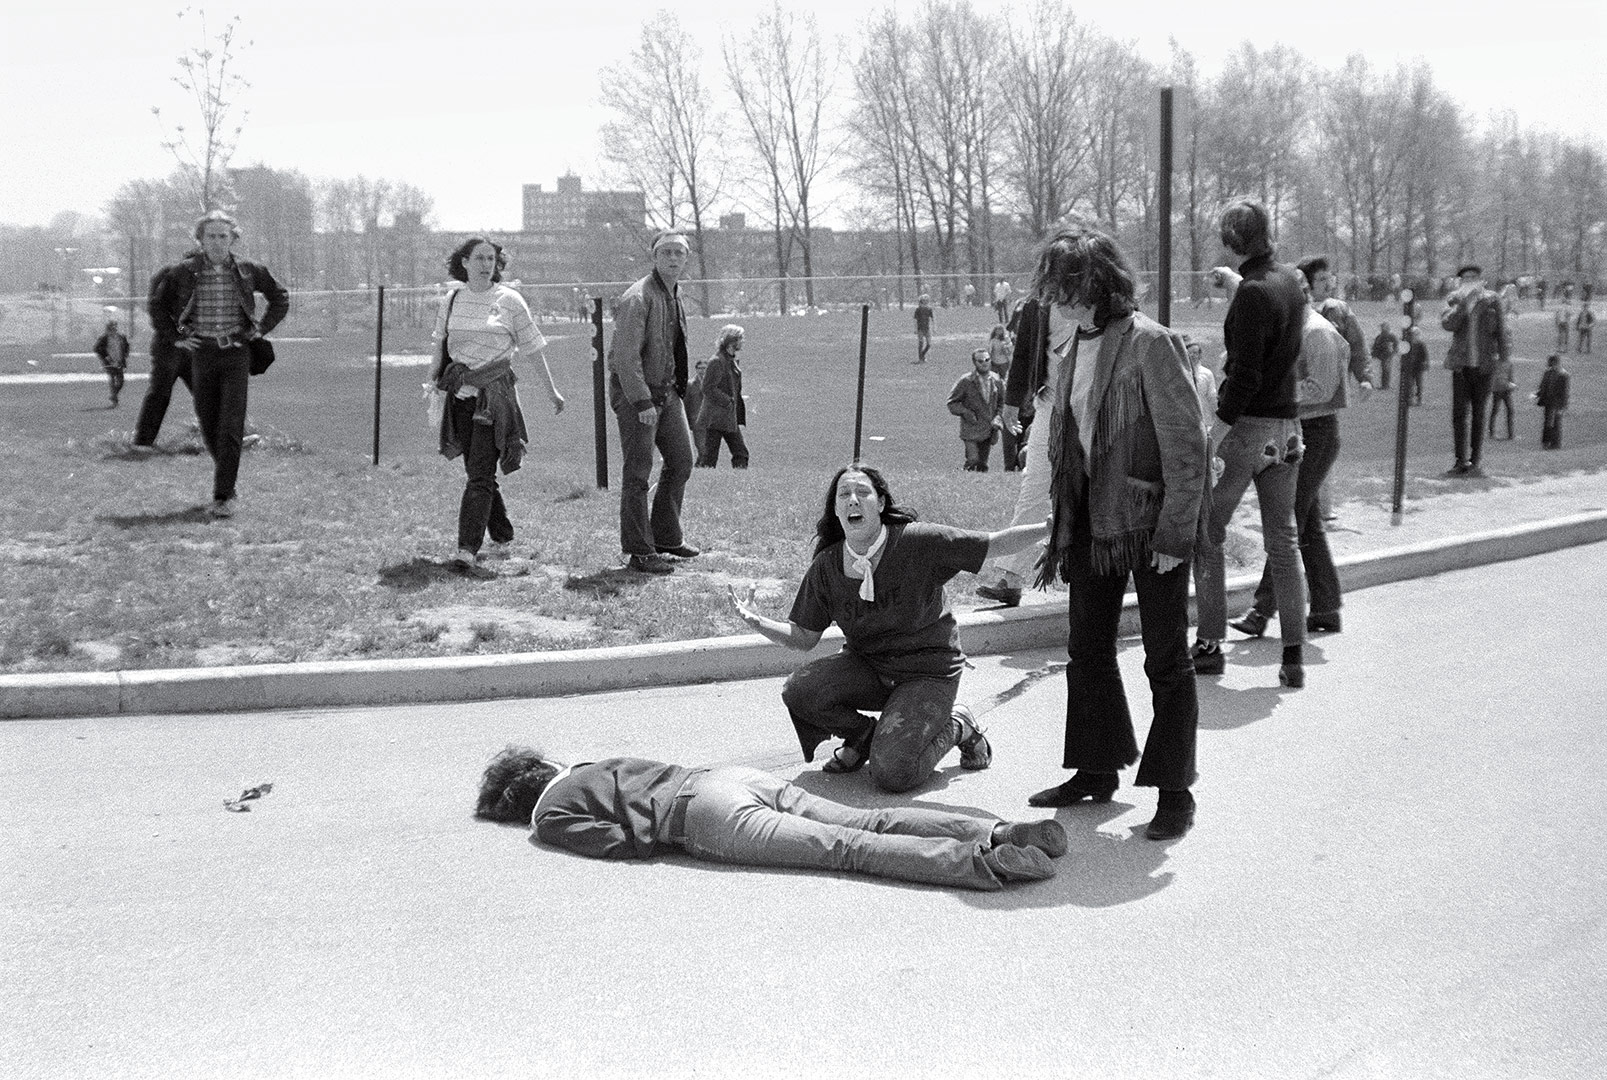 """""""Kent State Shooting"""" 1970 John Paul Filo  """"The shooting at Kent State University in Ohio lasted 13 seconds. When it was over, four students were dead, nine were wounded, and the innocence of a generation was shattered. The demonstrators were part of a national wave of student discontent spurred by the new presence of U.S. troops in Cambodia. At the Kent State Commons, protesters assumed that the National Guard troops that had been called to contain the crowds were firing blanks. But when the shooting stopped and students lay dead, it seemed that the war in Southeast Asia had come home. John Filo, a student and part-time news photographer, distilled that feeling into a single image when he captured Mary Ann Vecchio crying out and kneeling over a fatally wounded Jeffrey Miller. Filo's photograph was put out on the AP wire and printed on the front page of the New York Times. It went on to win the Pulitzer Prize and has since become the visual symbol of a hopeful nation's lost youth. As Neil Young wrote in the song """"Ohio,"""" inspired by a LIFE story featuring Filo's images, """"Tin soldiers and Nixon coming/ We're finally on our own/ This summer I hear the drumming/ Four dead in Ohio."""" -- TIME MAGAZINE"""